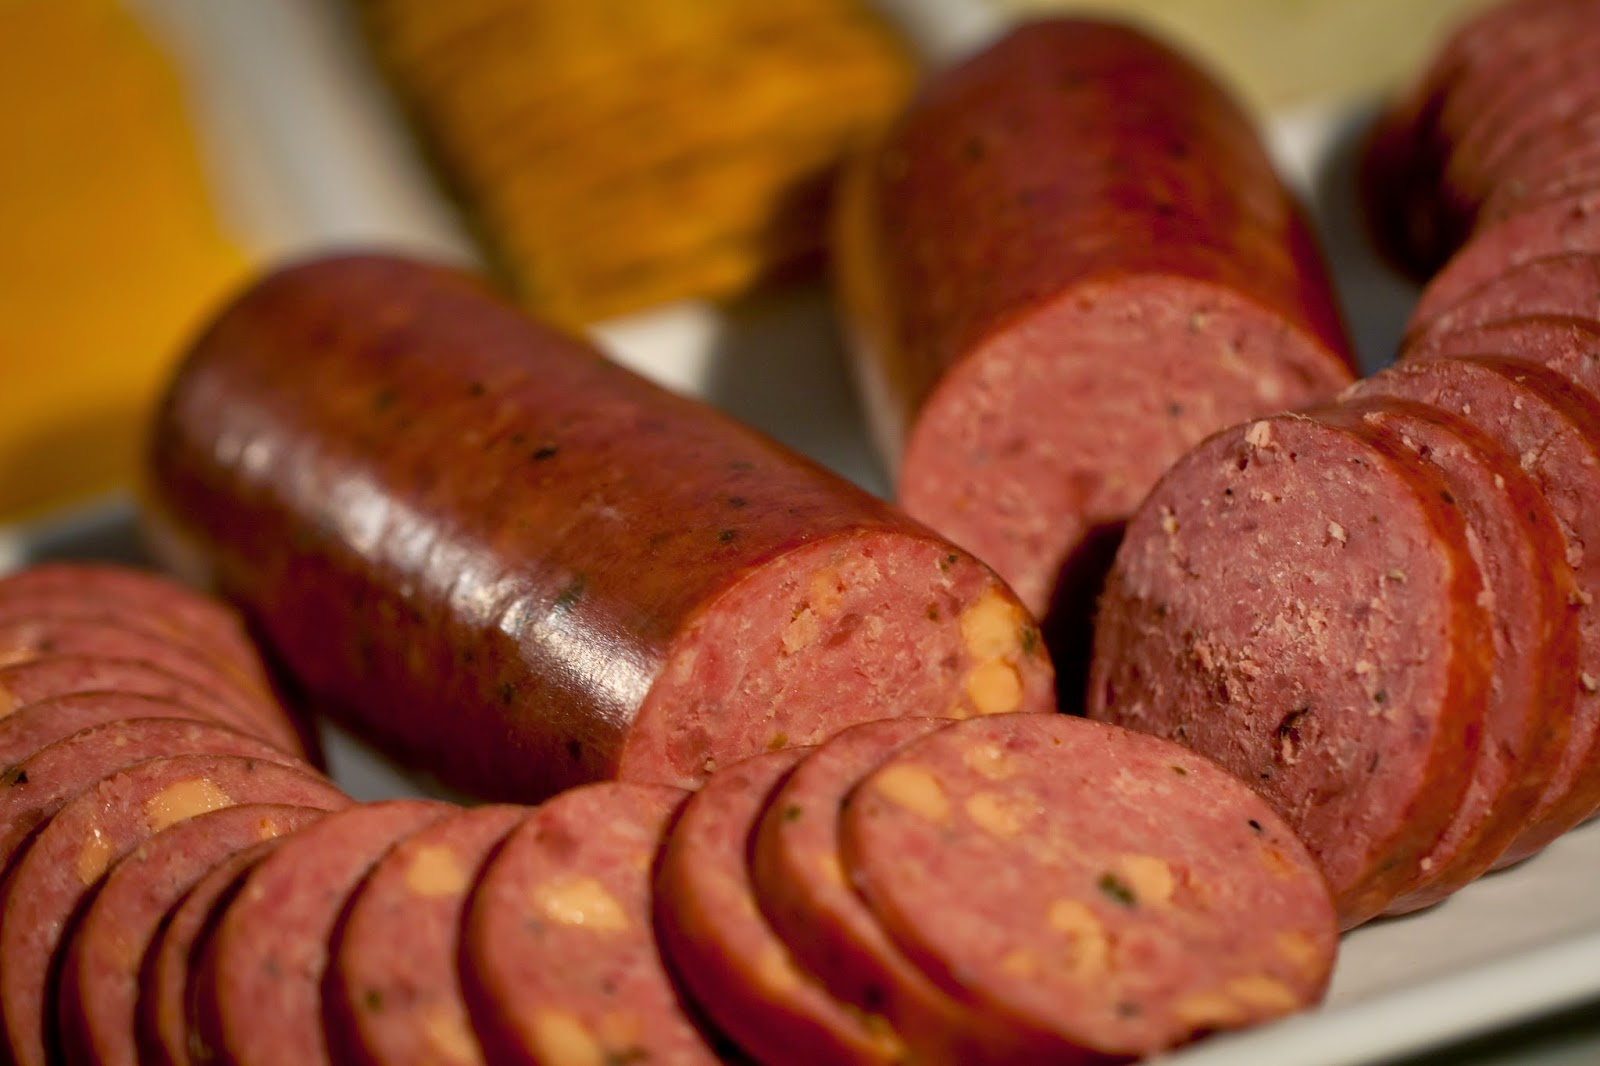 http://www.nebraskabison.com/collections/bison-sausages/products/bison-summer-sausage-variety-pack